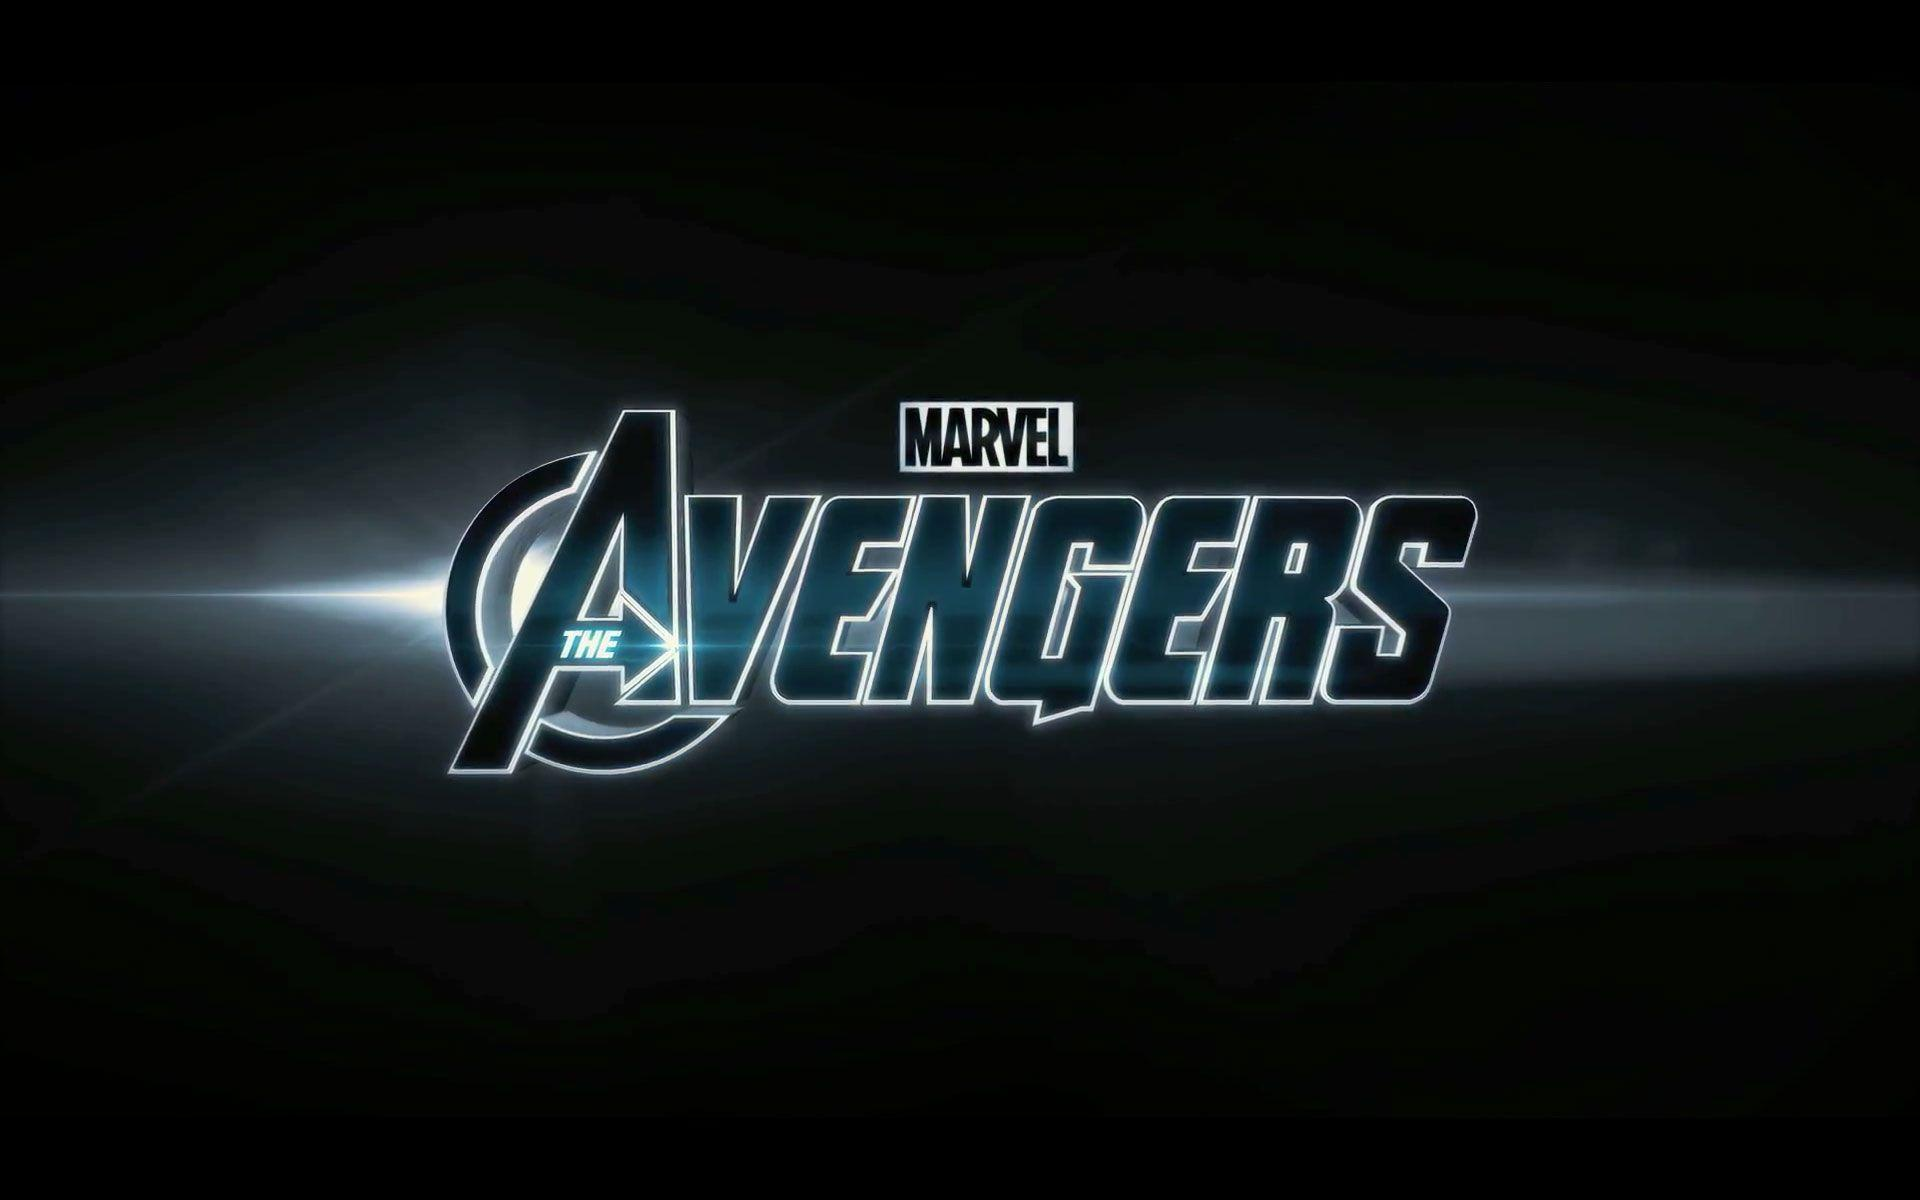 Avengers 2 Wallpapers - Full HD wallpaper search